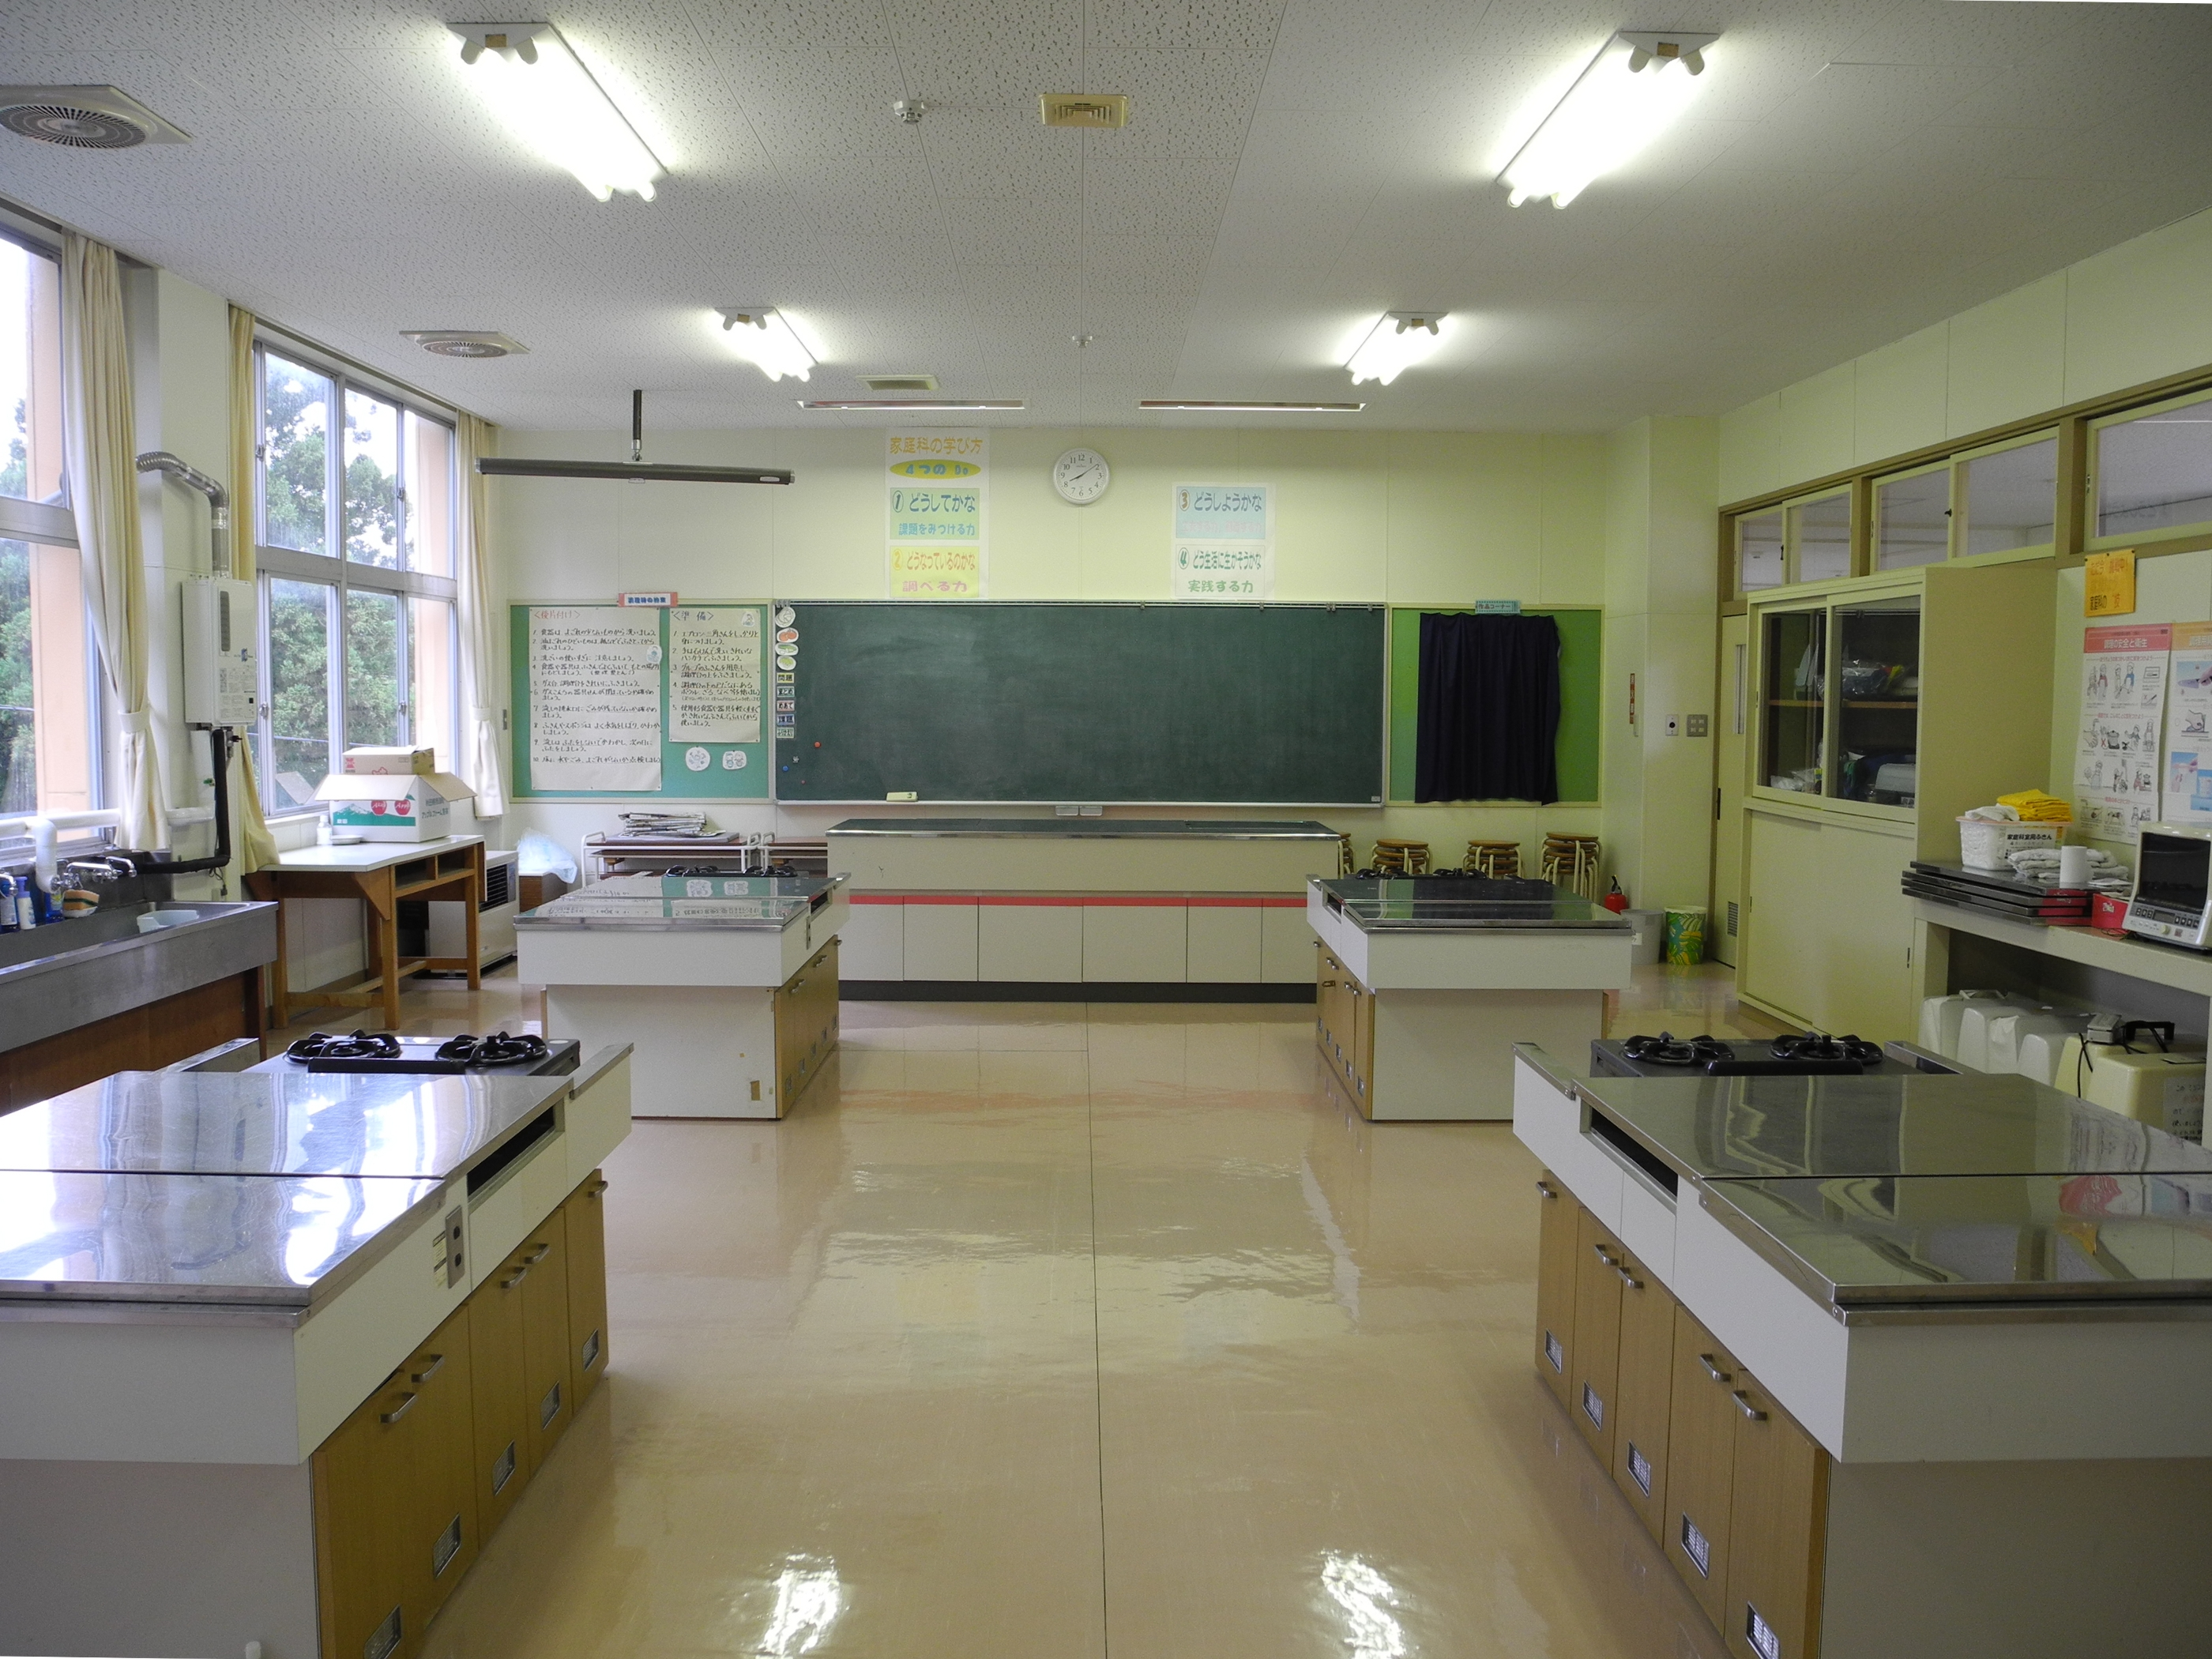 File:Hitane Elementary School kitchen 2.jpg - Wikimedia